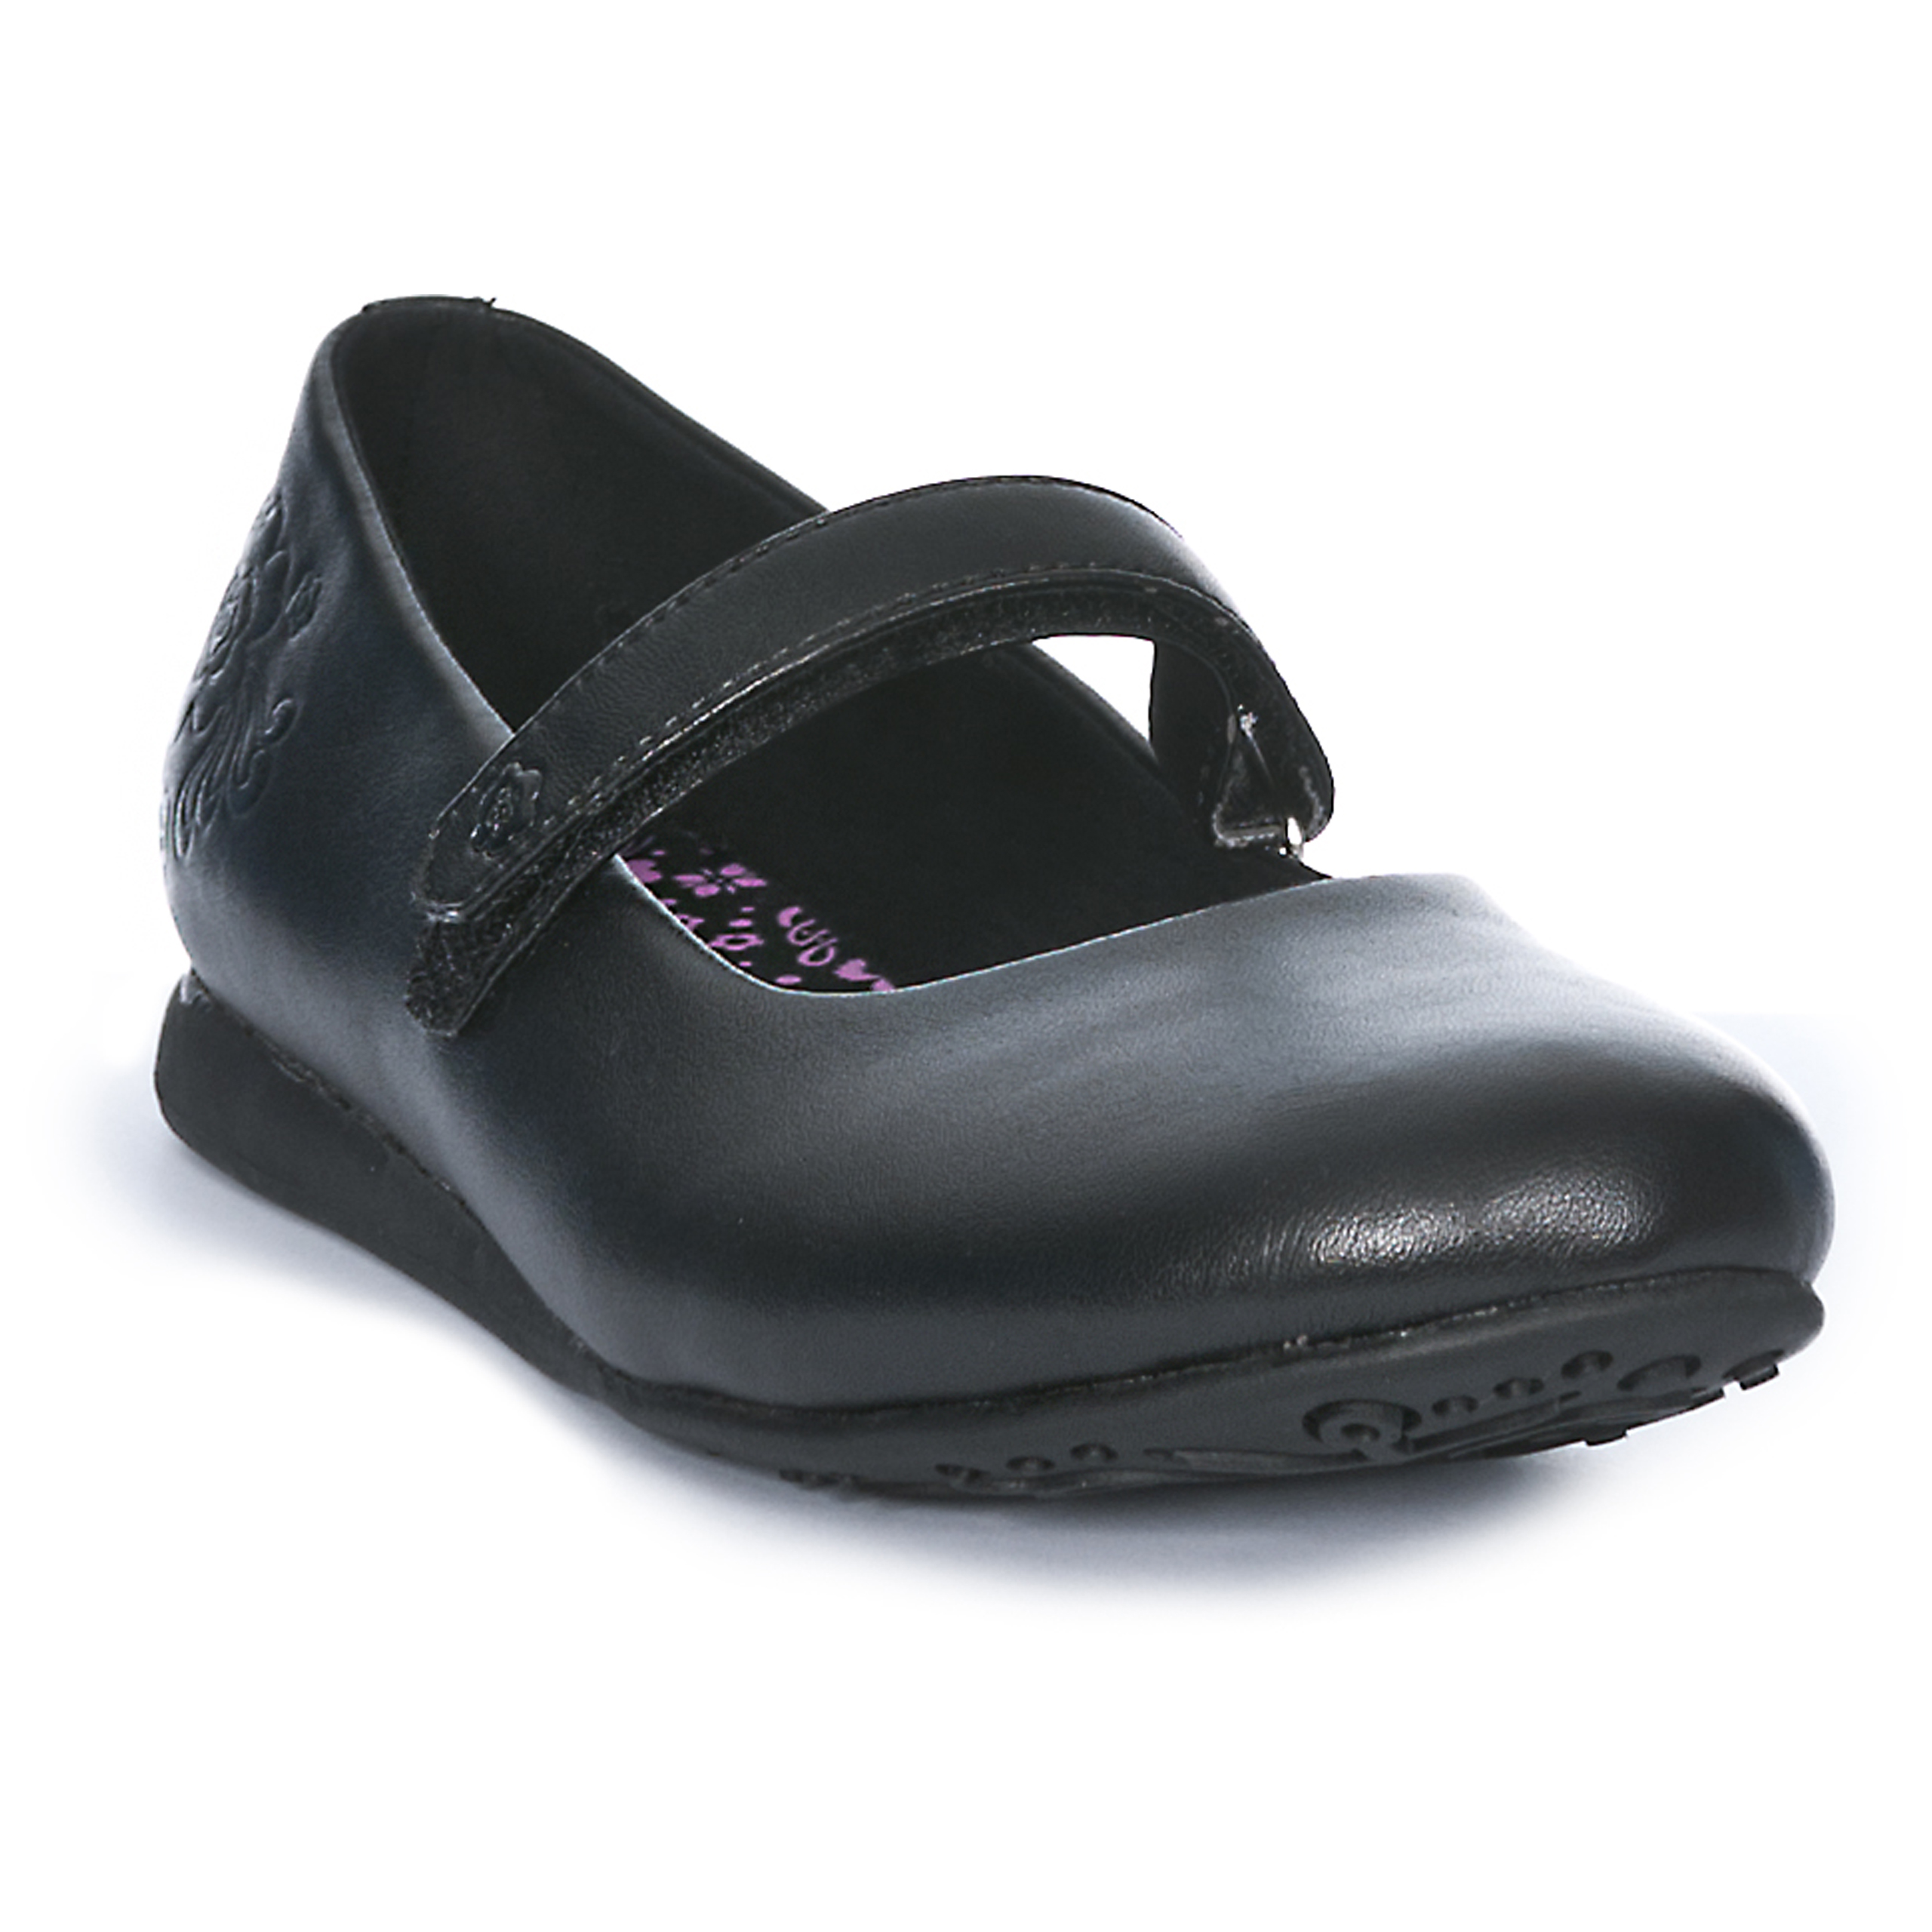 trespass black school shoes